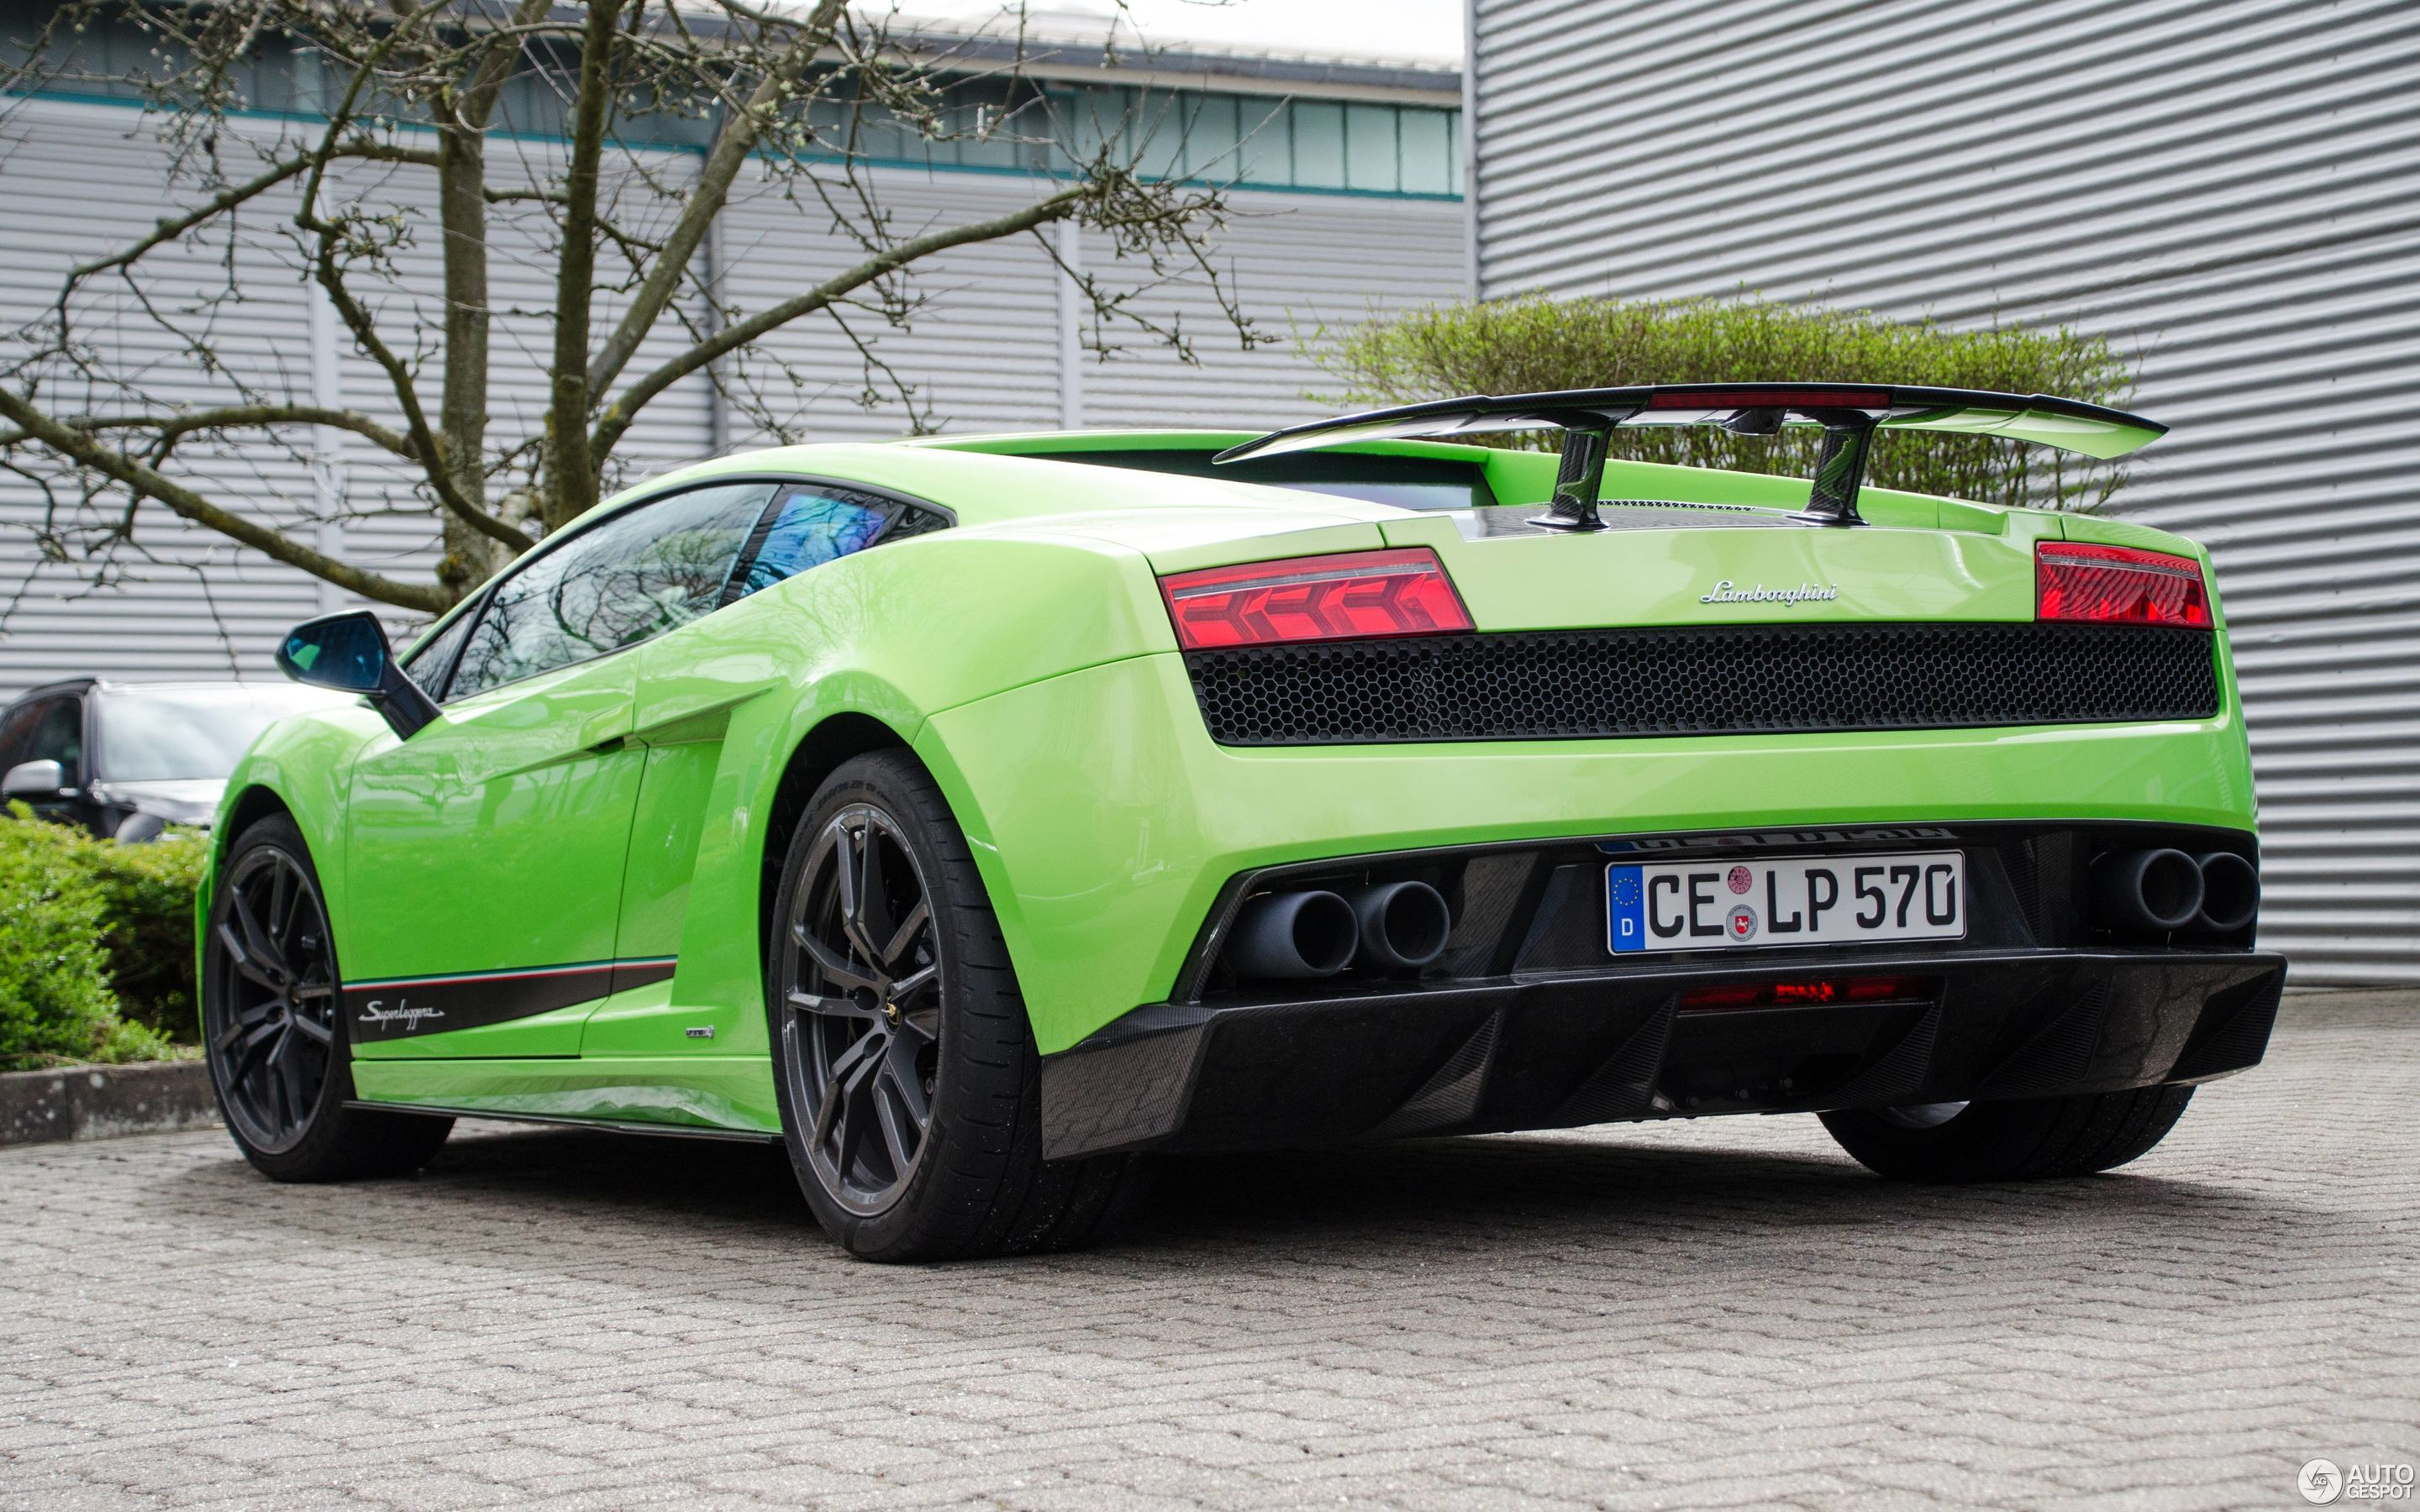 Beautiful Lamborghini Gallardo LP570 4 Superleggera